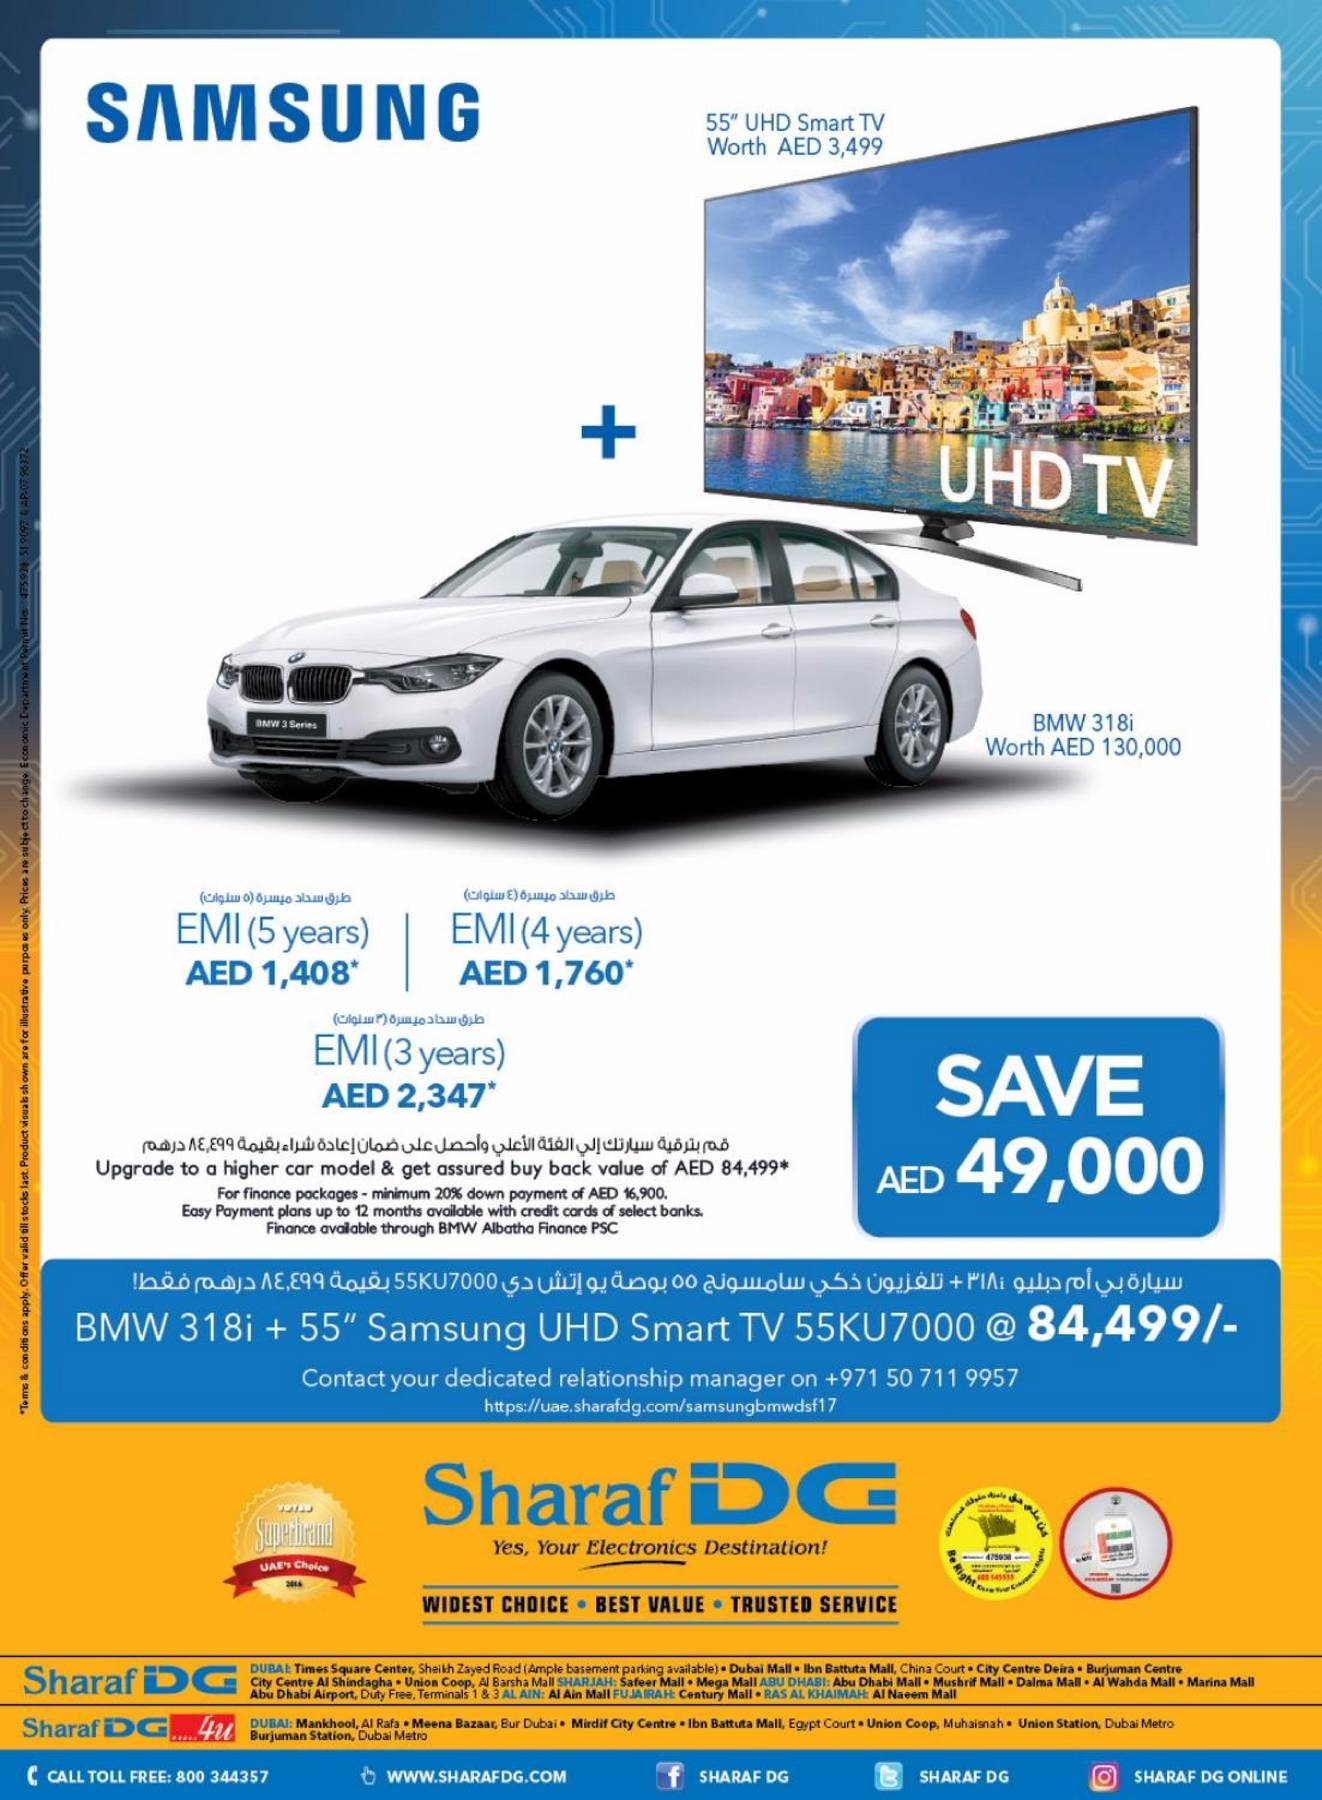 Simply The Best Electronic Fest from Sharaf DG until 28th February